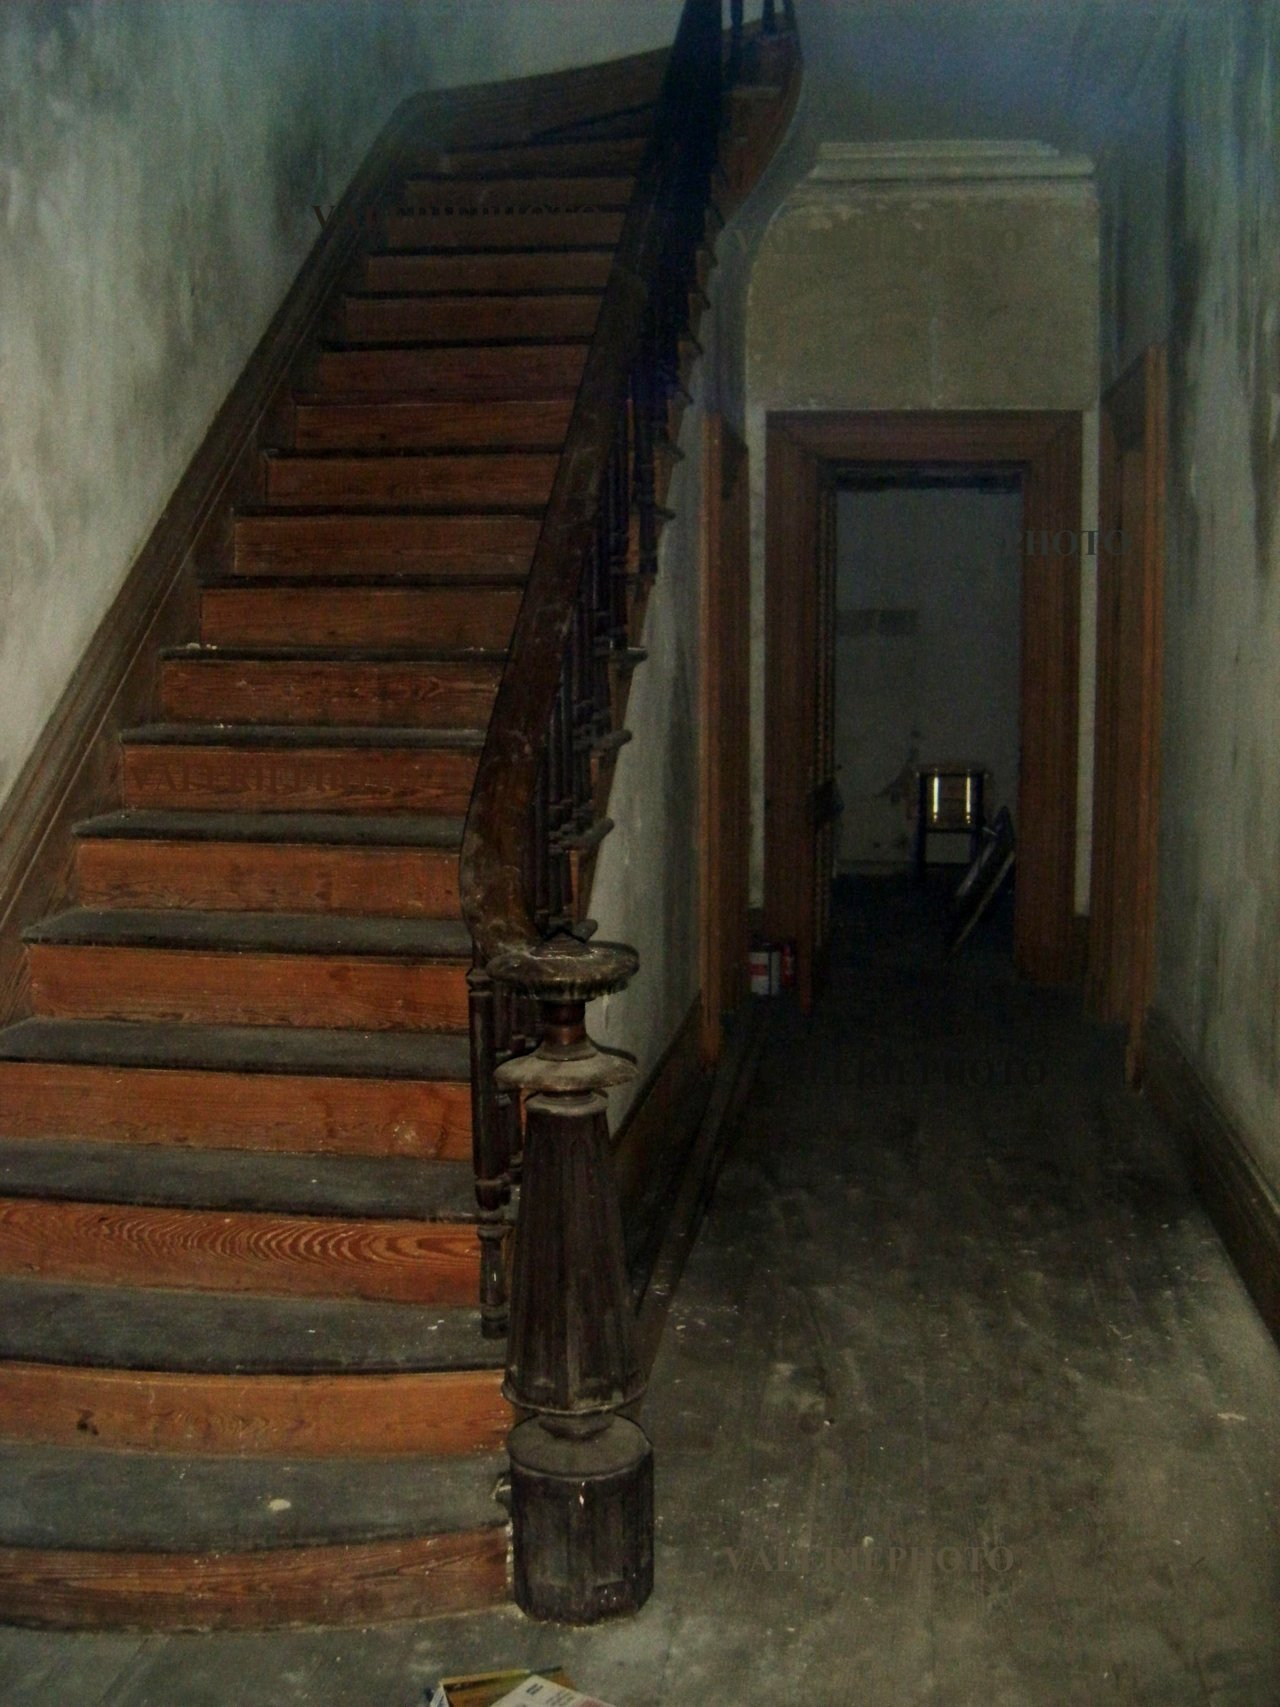 Foyer in abandoned Savannah Georgia mansion/house